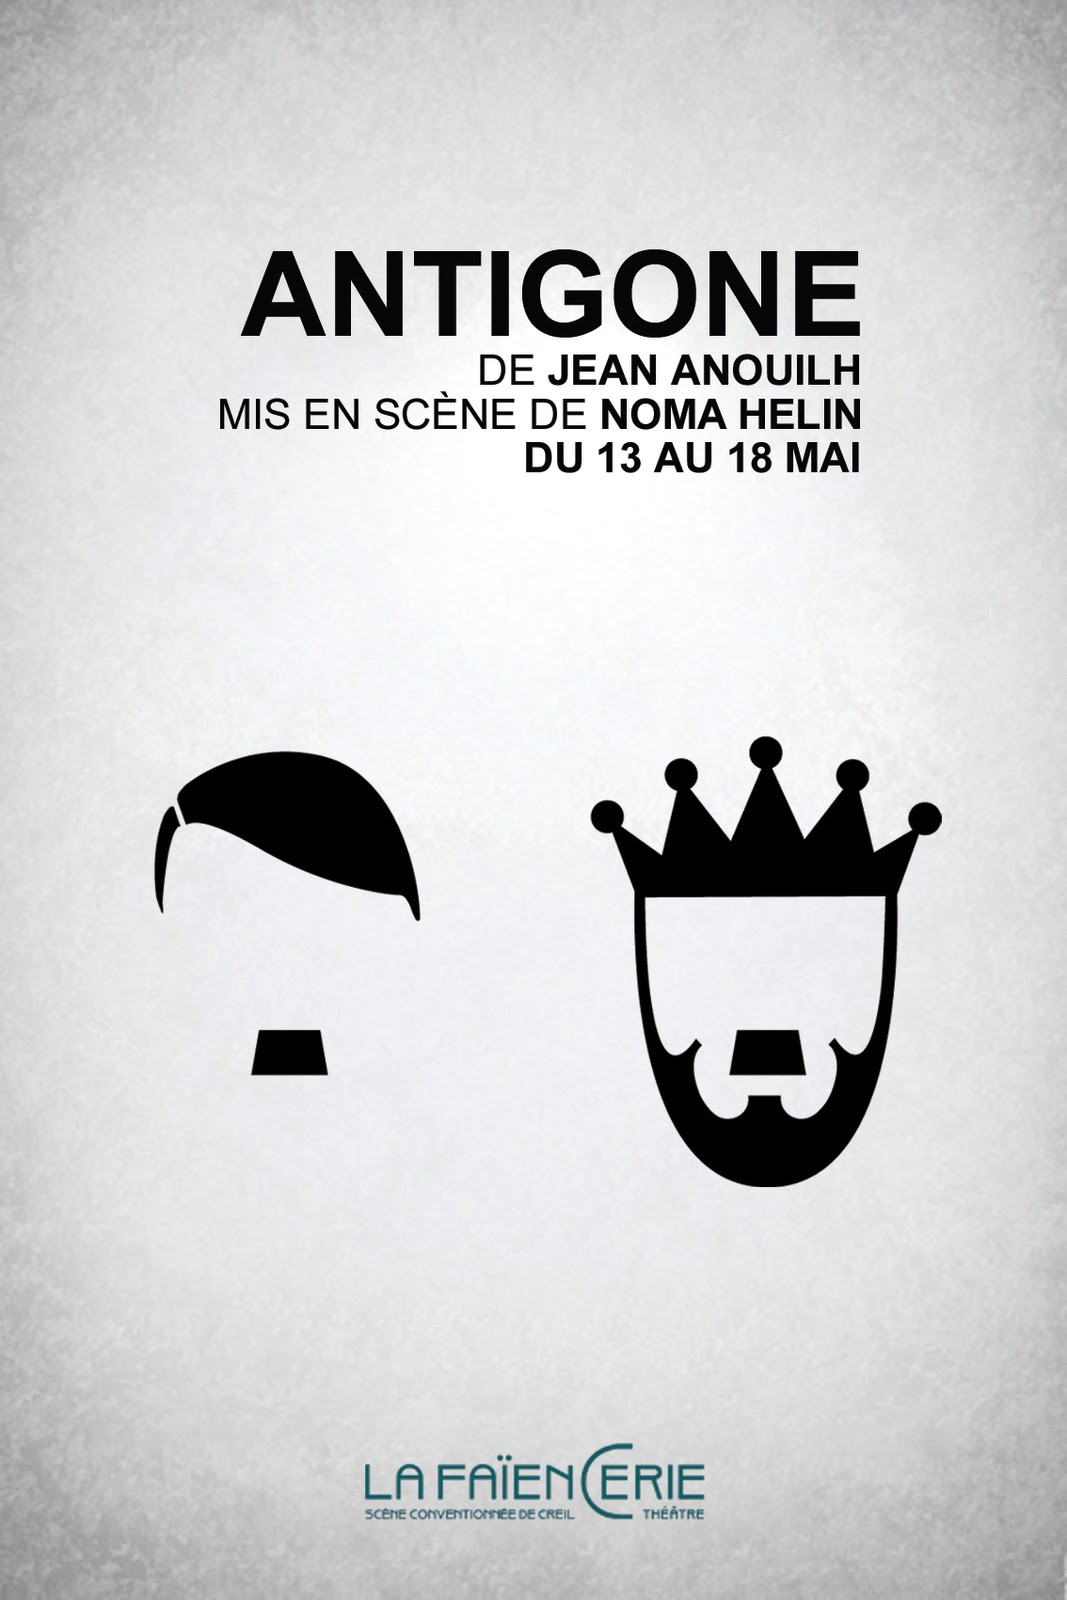 antigone creon comparison essay Similarly, creon was warned by tiresias in antigone of the trouble that was to result from his injustice if he tried to make amends, however low he's fallen, and stops his bullnecked ways stubbornness brands you for stupidity-pride is a crime (sophocles 112.